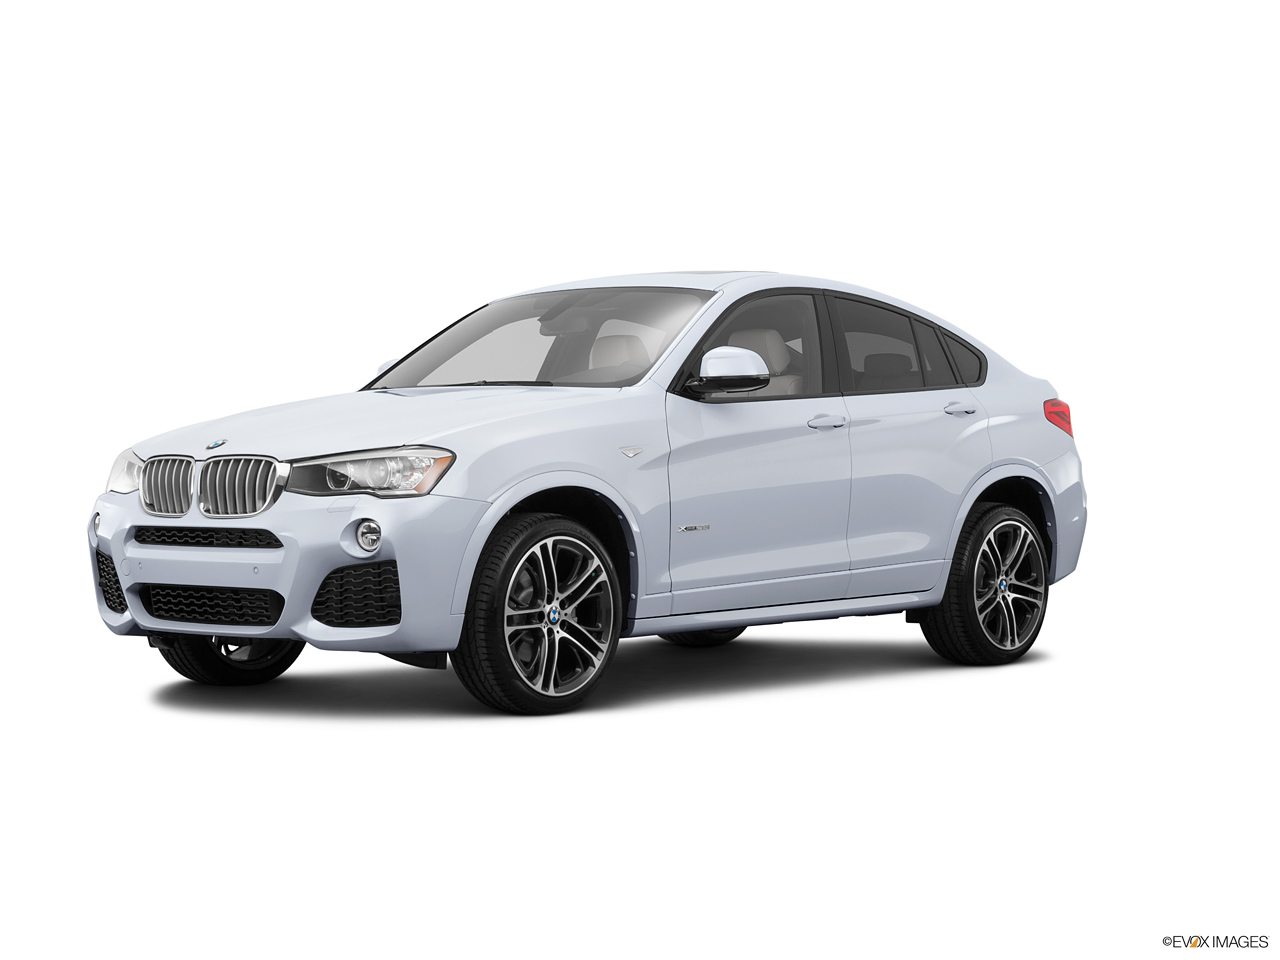 Bmw X4 Xdrive 28i In Oman New Car Prices Specs Reviews Amp Photos